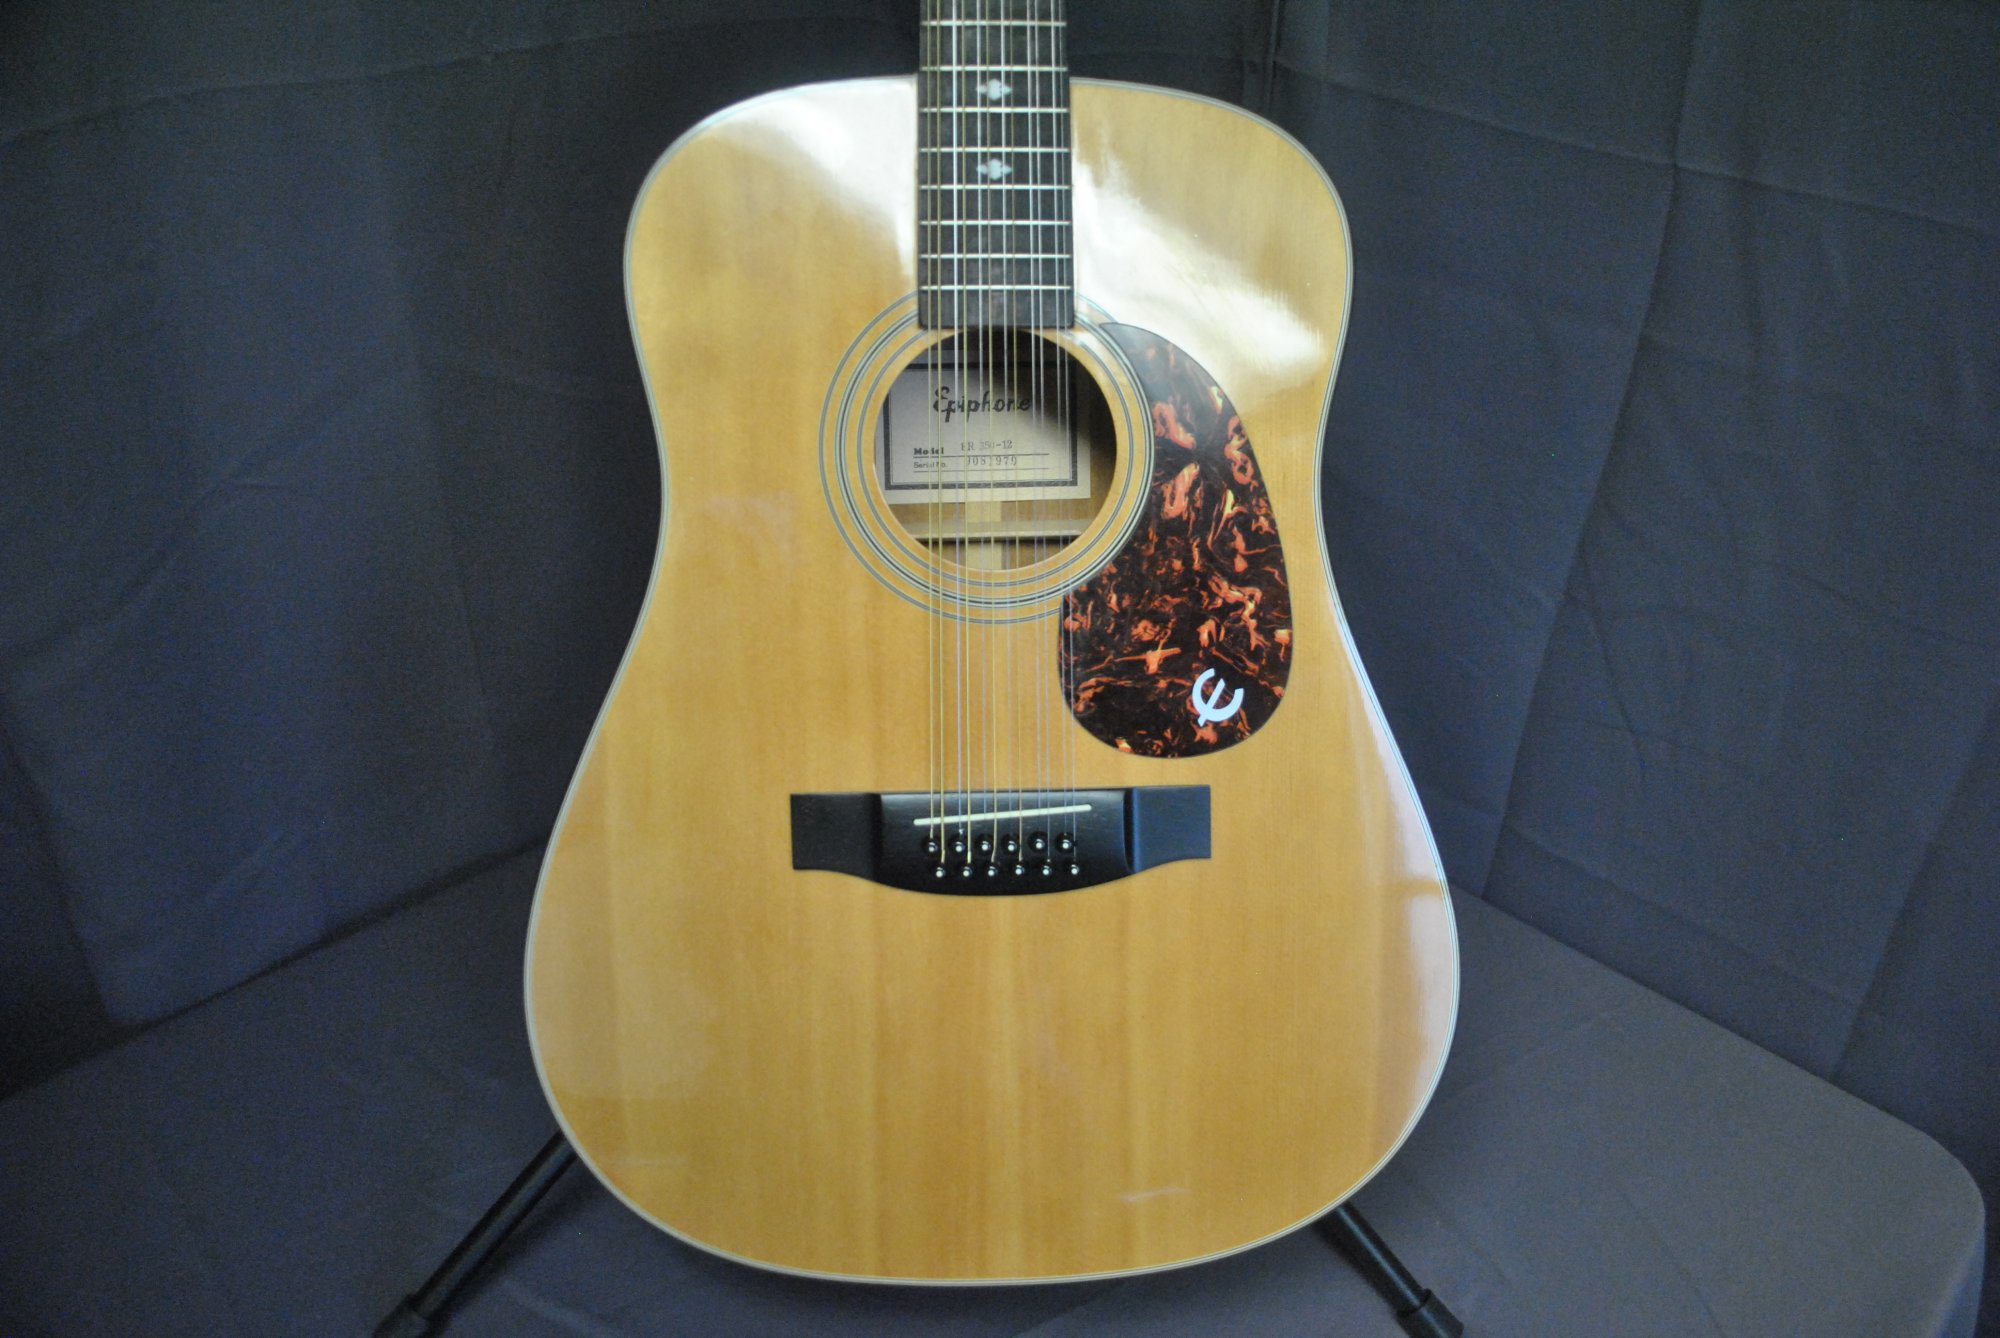 Epiphone Guitar, Acoustic 12 string